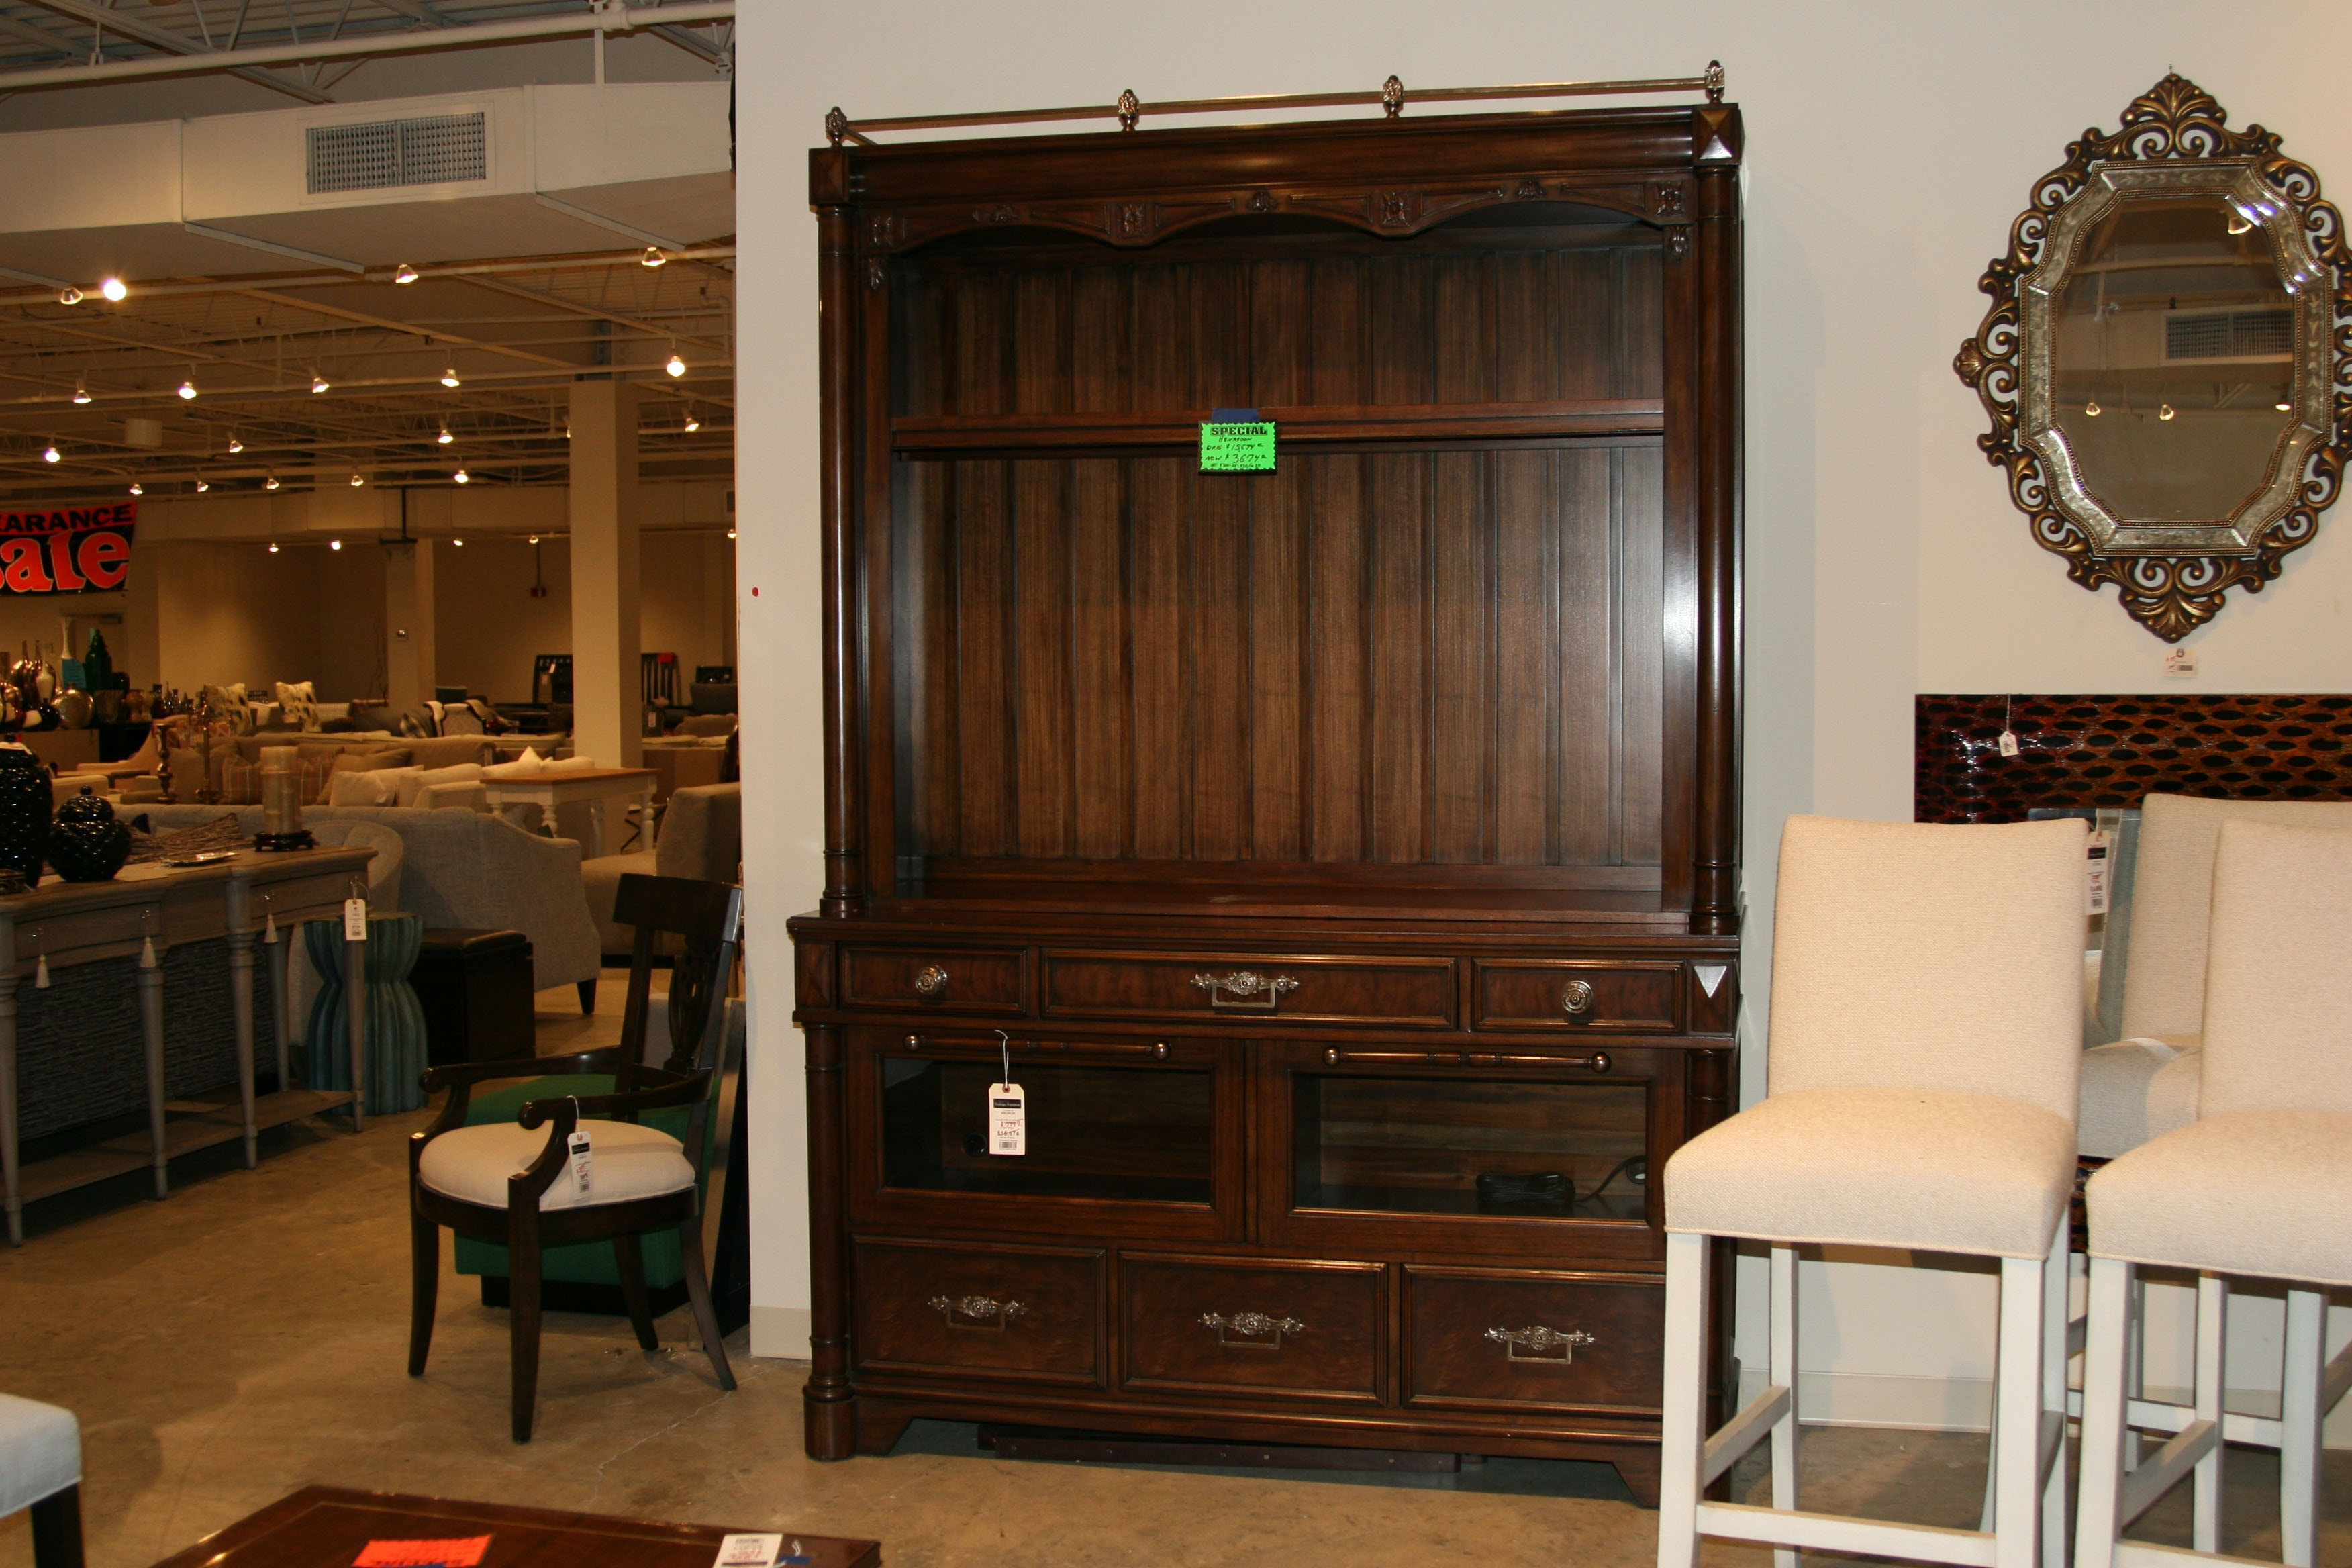 Heritage Furniture Outlet Cabinet By Henredon Furniture 4300 26 430